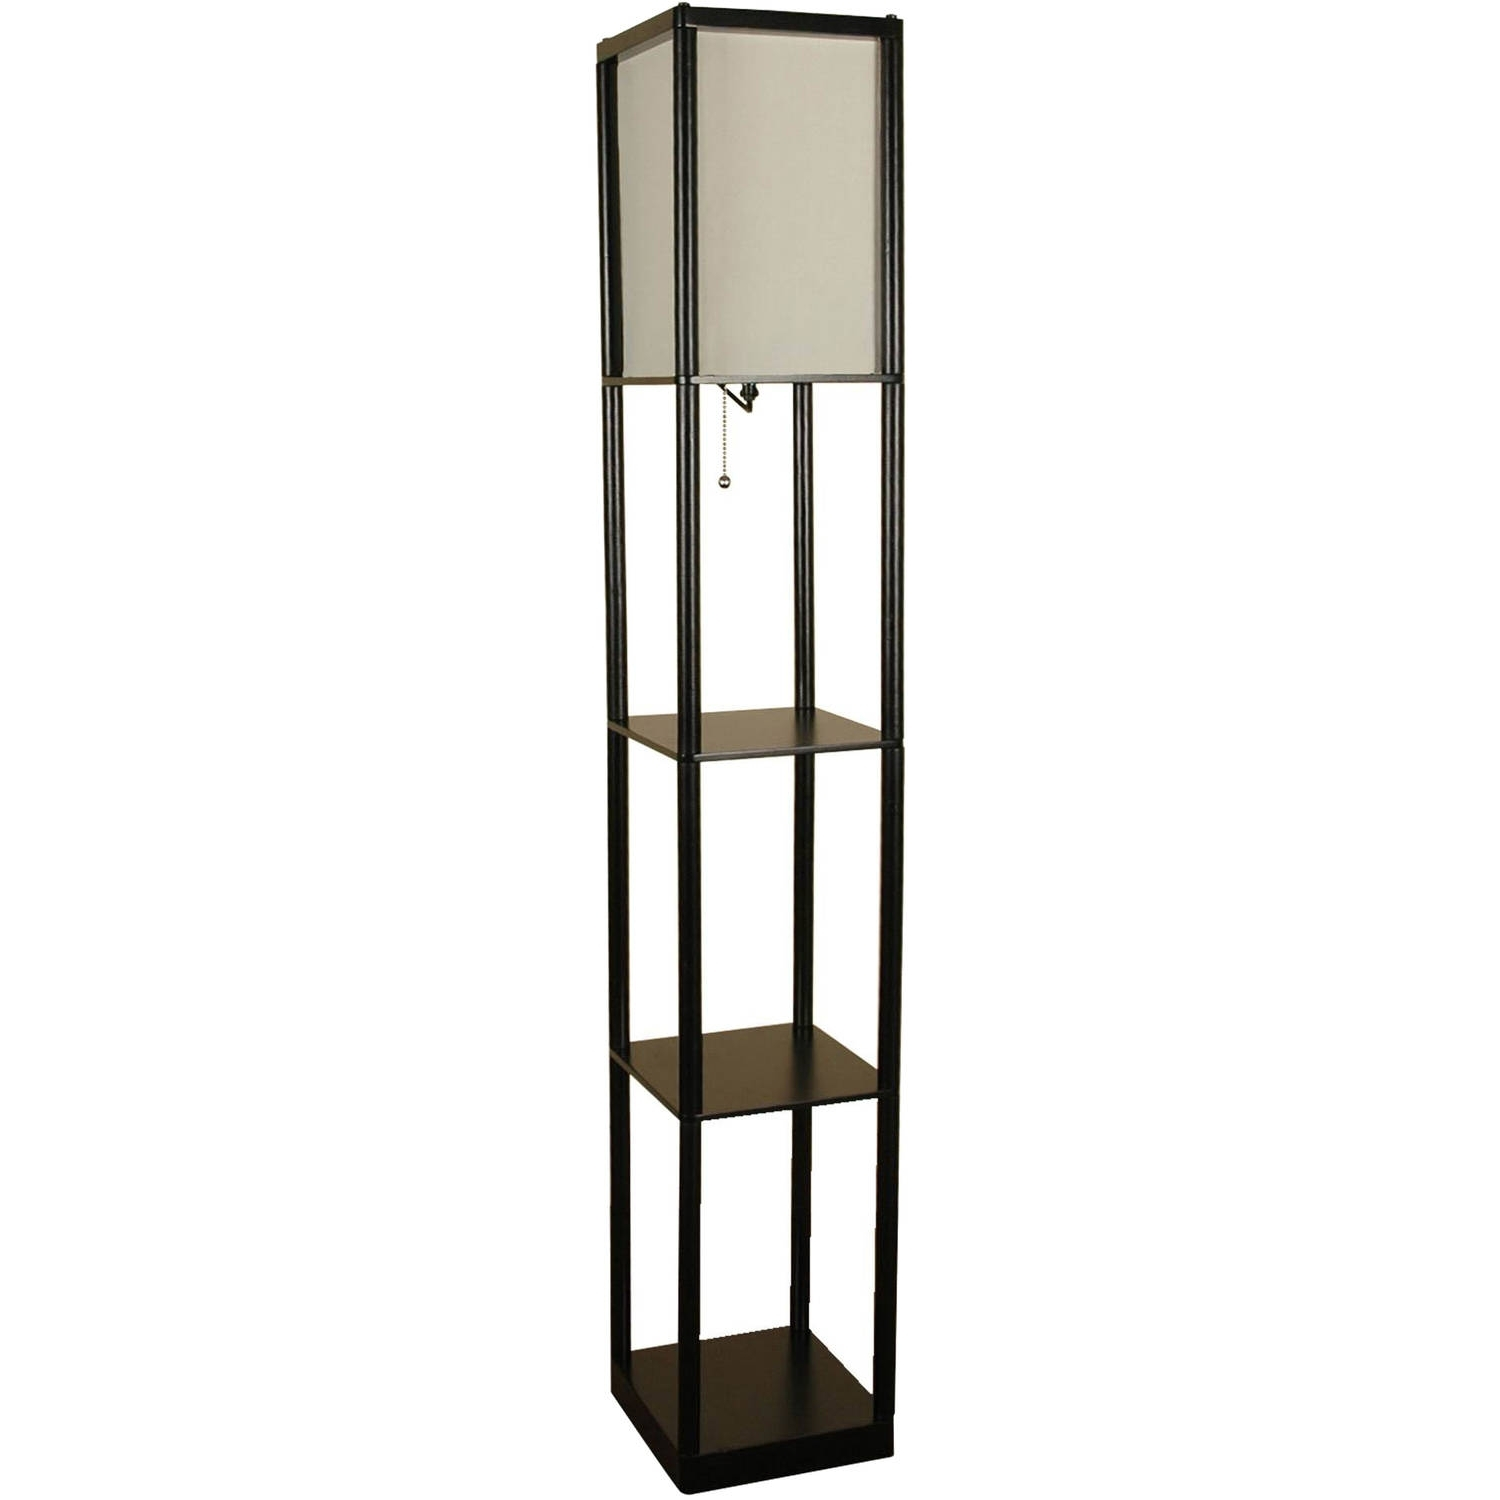 Mainstays Black Shelf Floor Lamp With White Shade On/off Cfl Bulb With Regard To Most Up To Date Walmart Living Room Table Lamps (View 12 of 15)